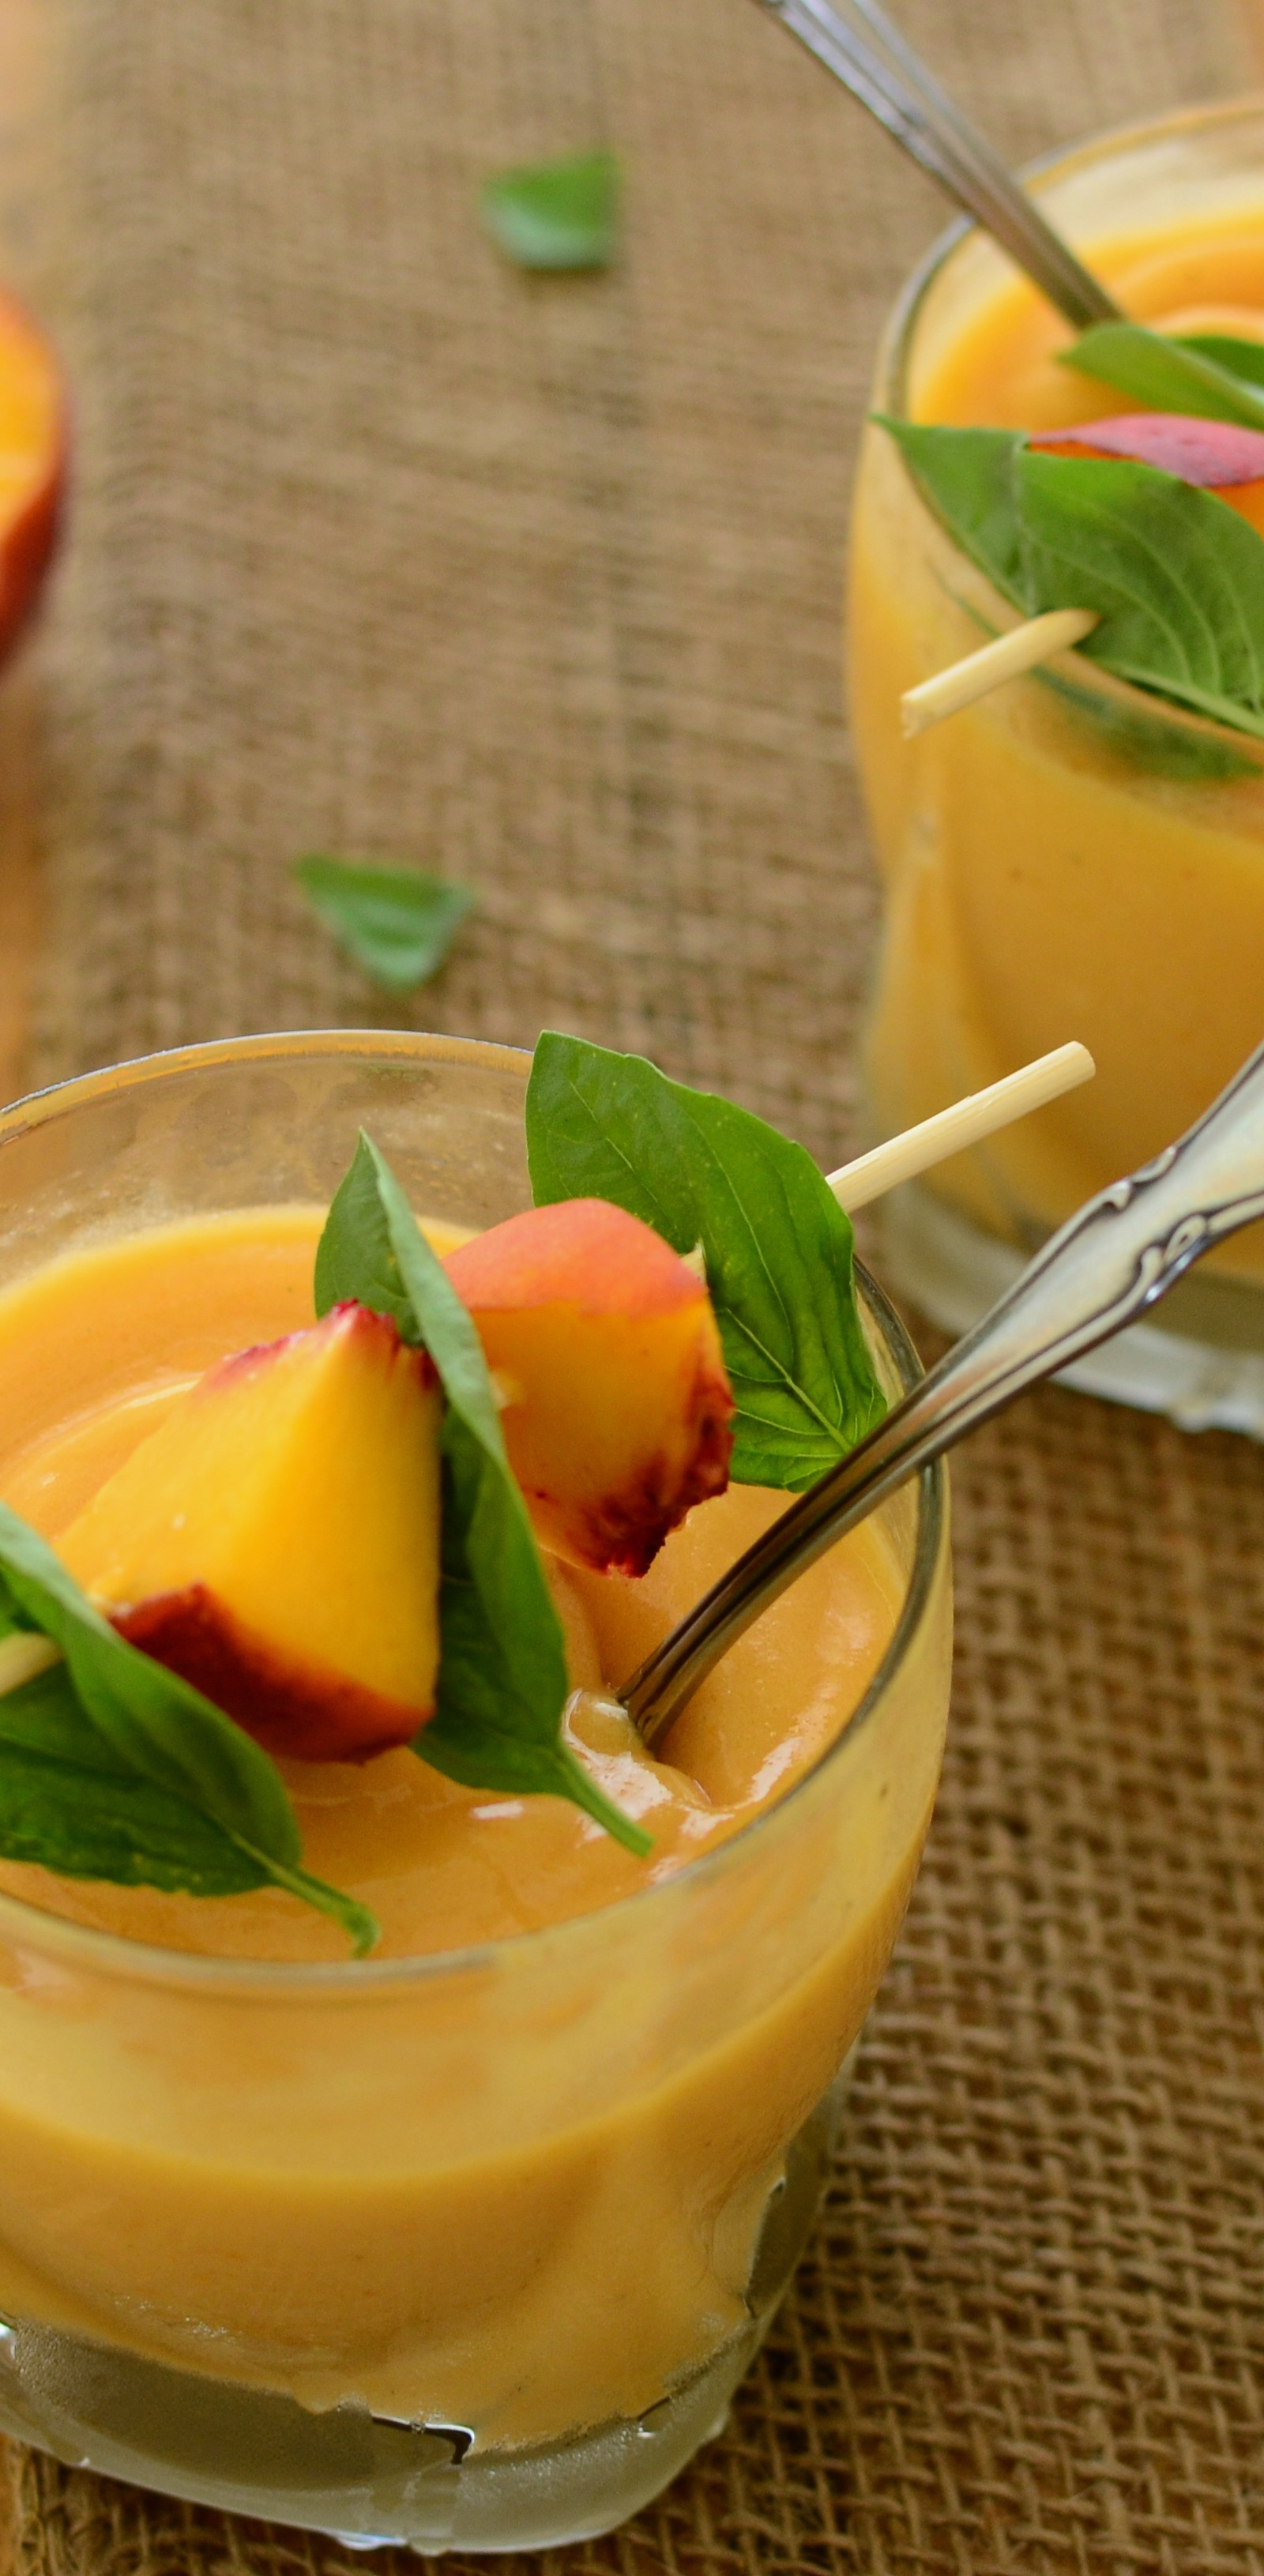 Peach Smoothie Main